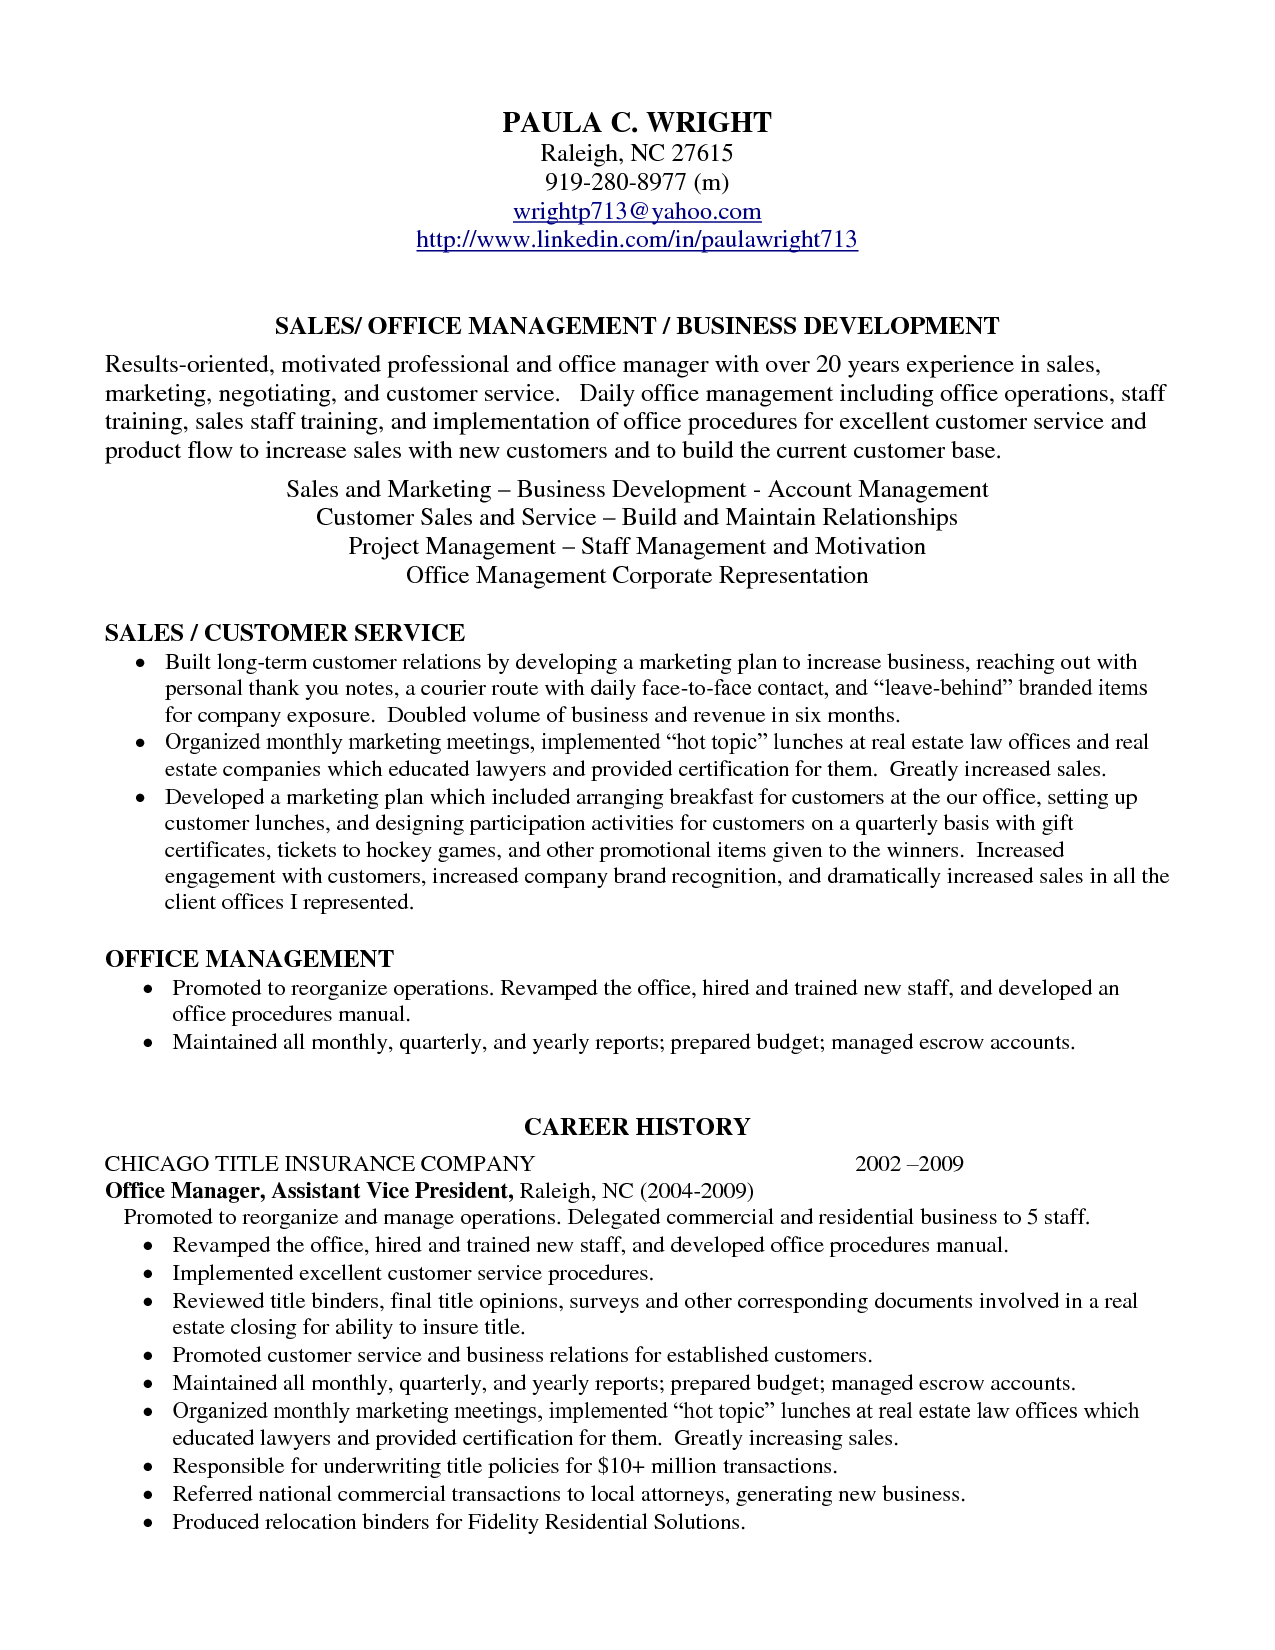 professional marketing resume sample manager | Home Design Idea ...